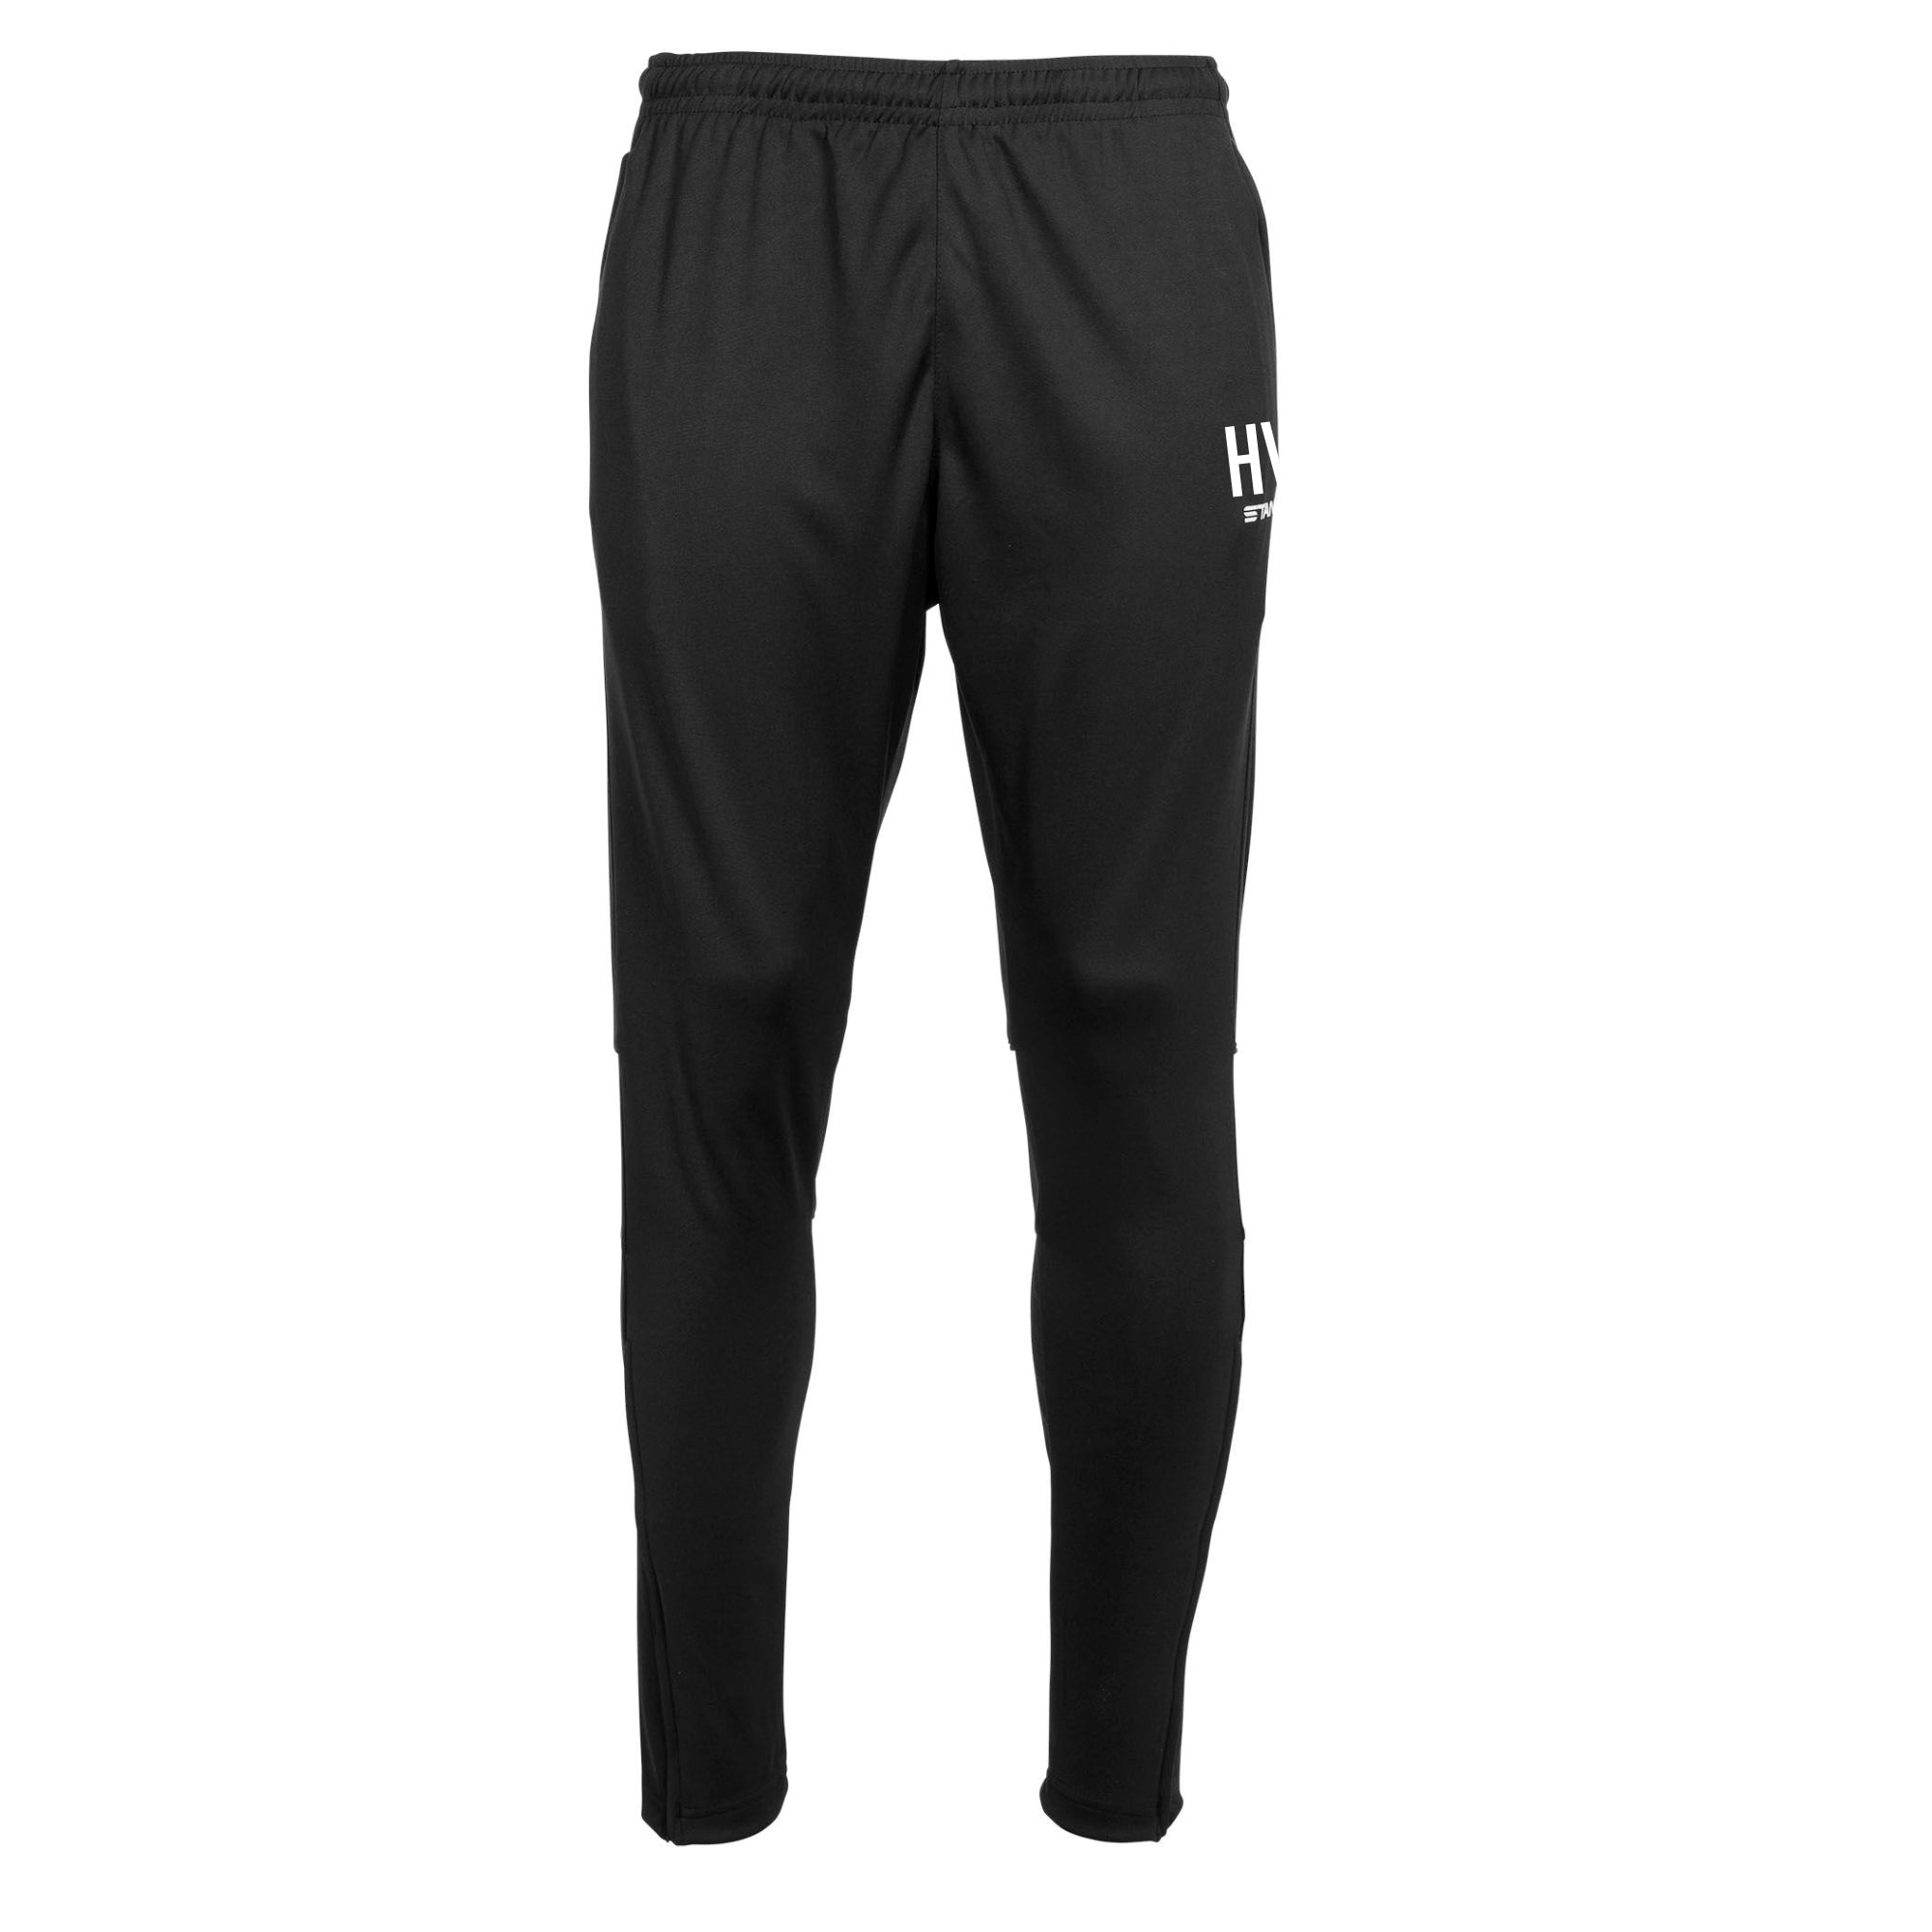 Corfe Mullen Utd FC Stanno Centro Fitted Pants in Black